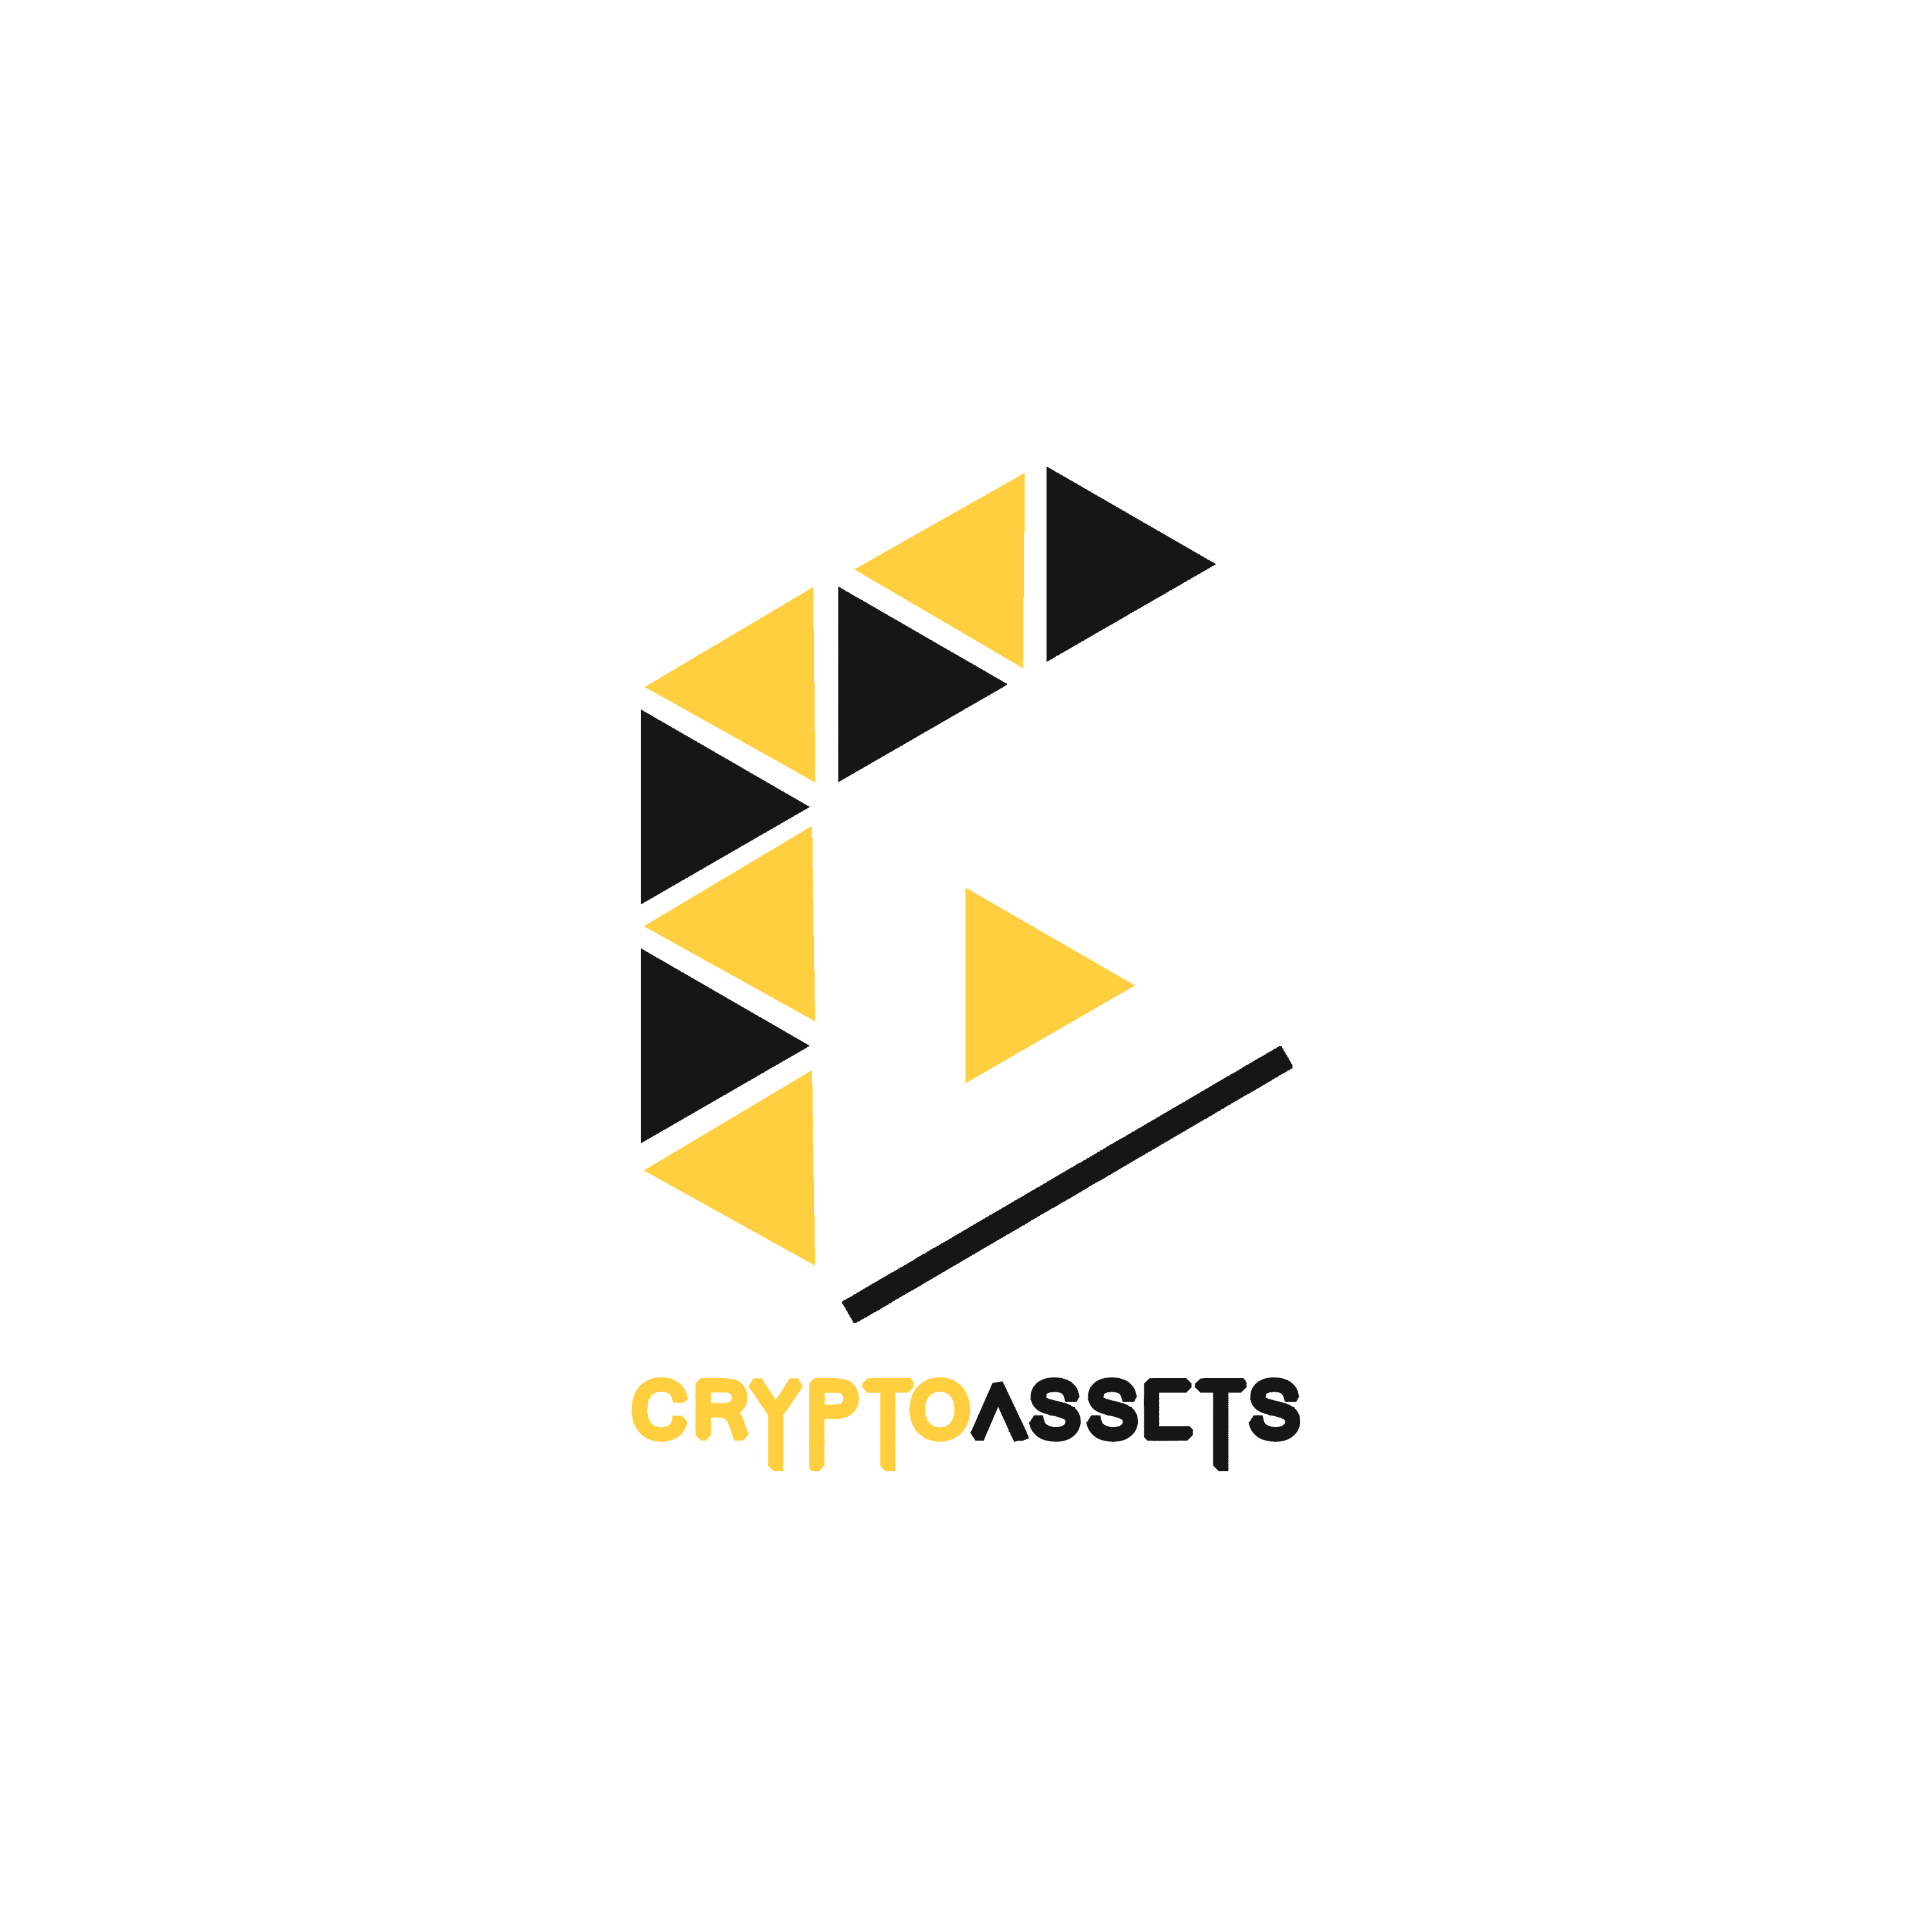 Cryptp Asscts